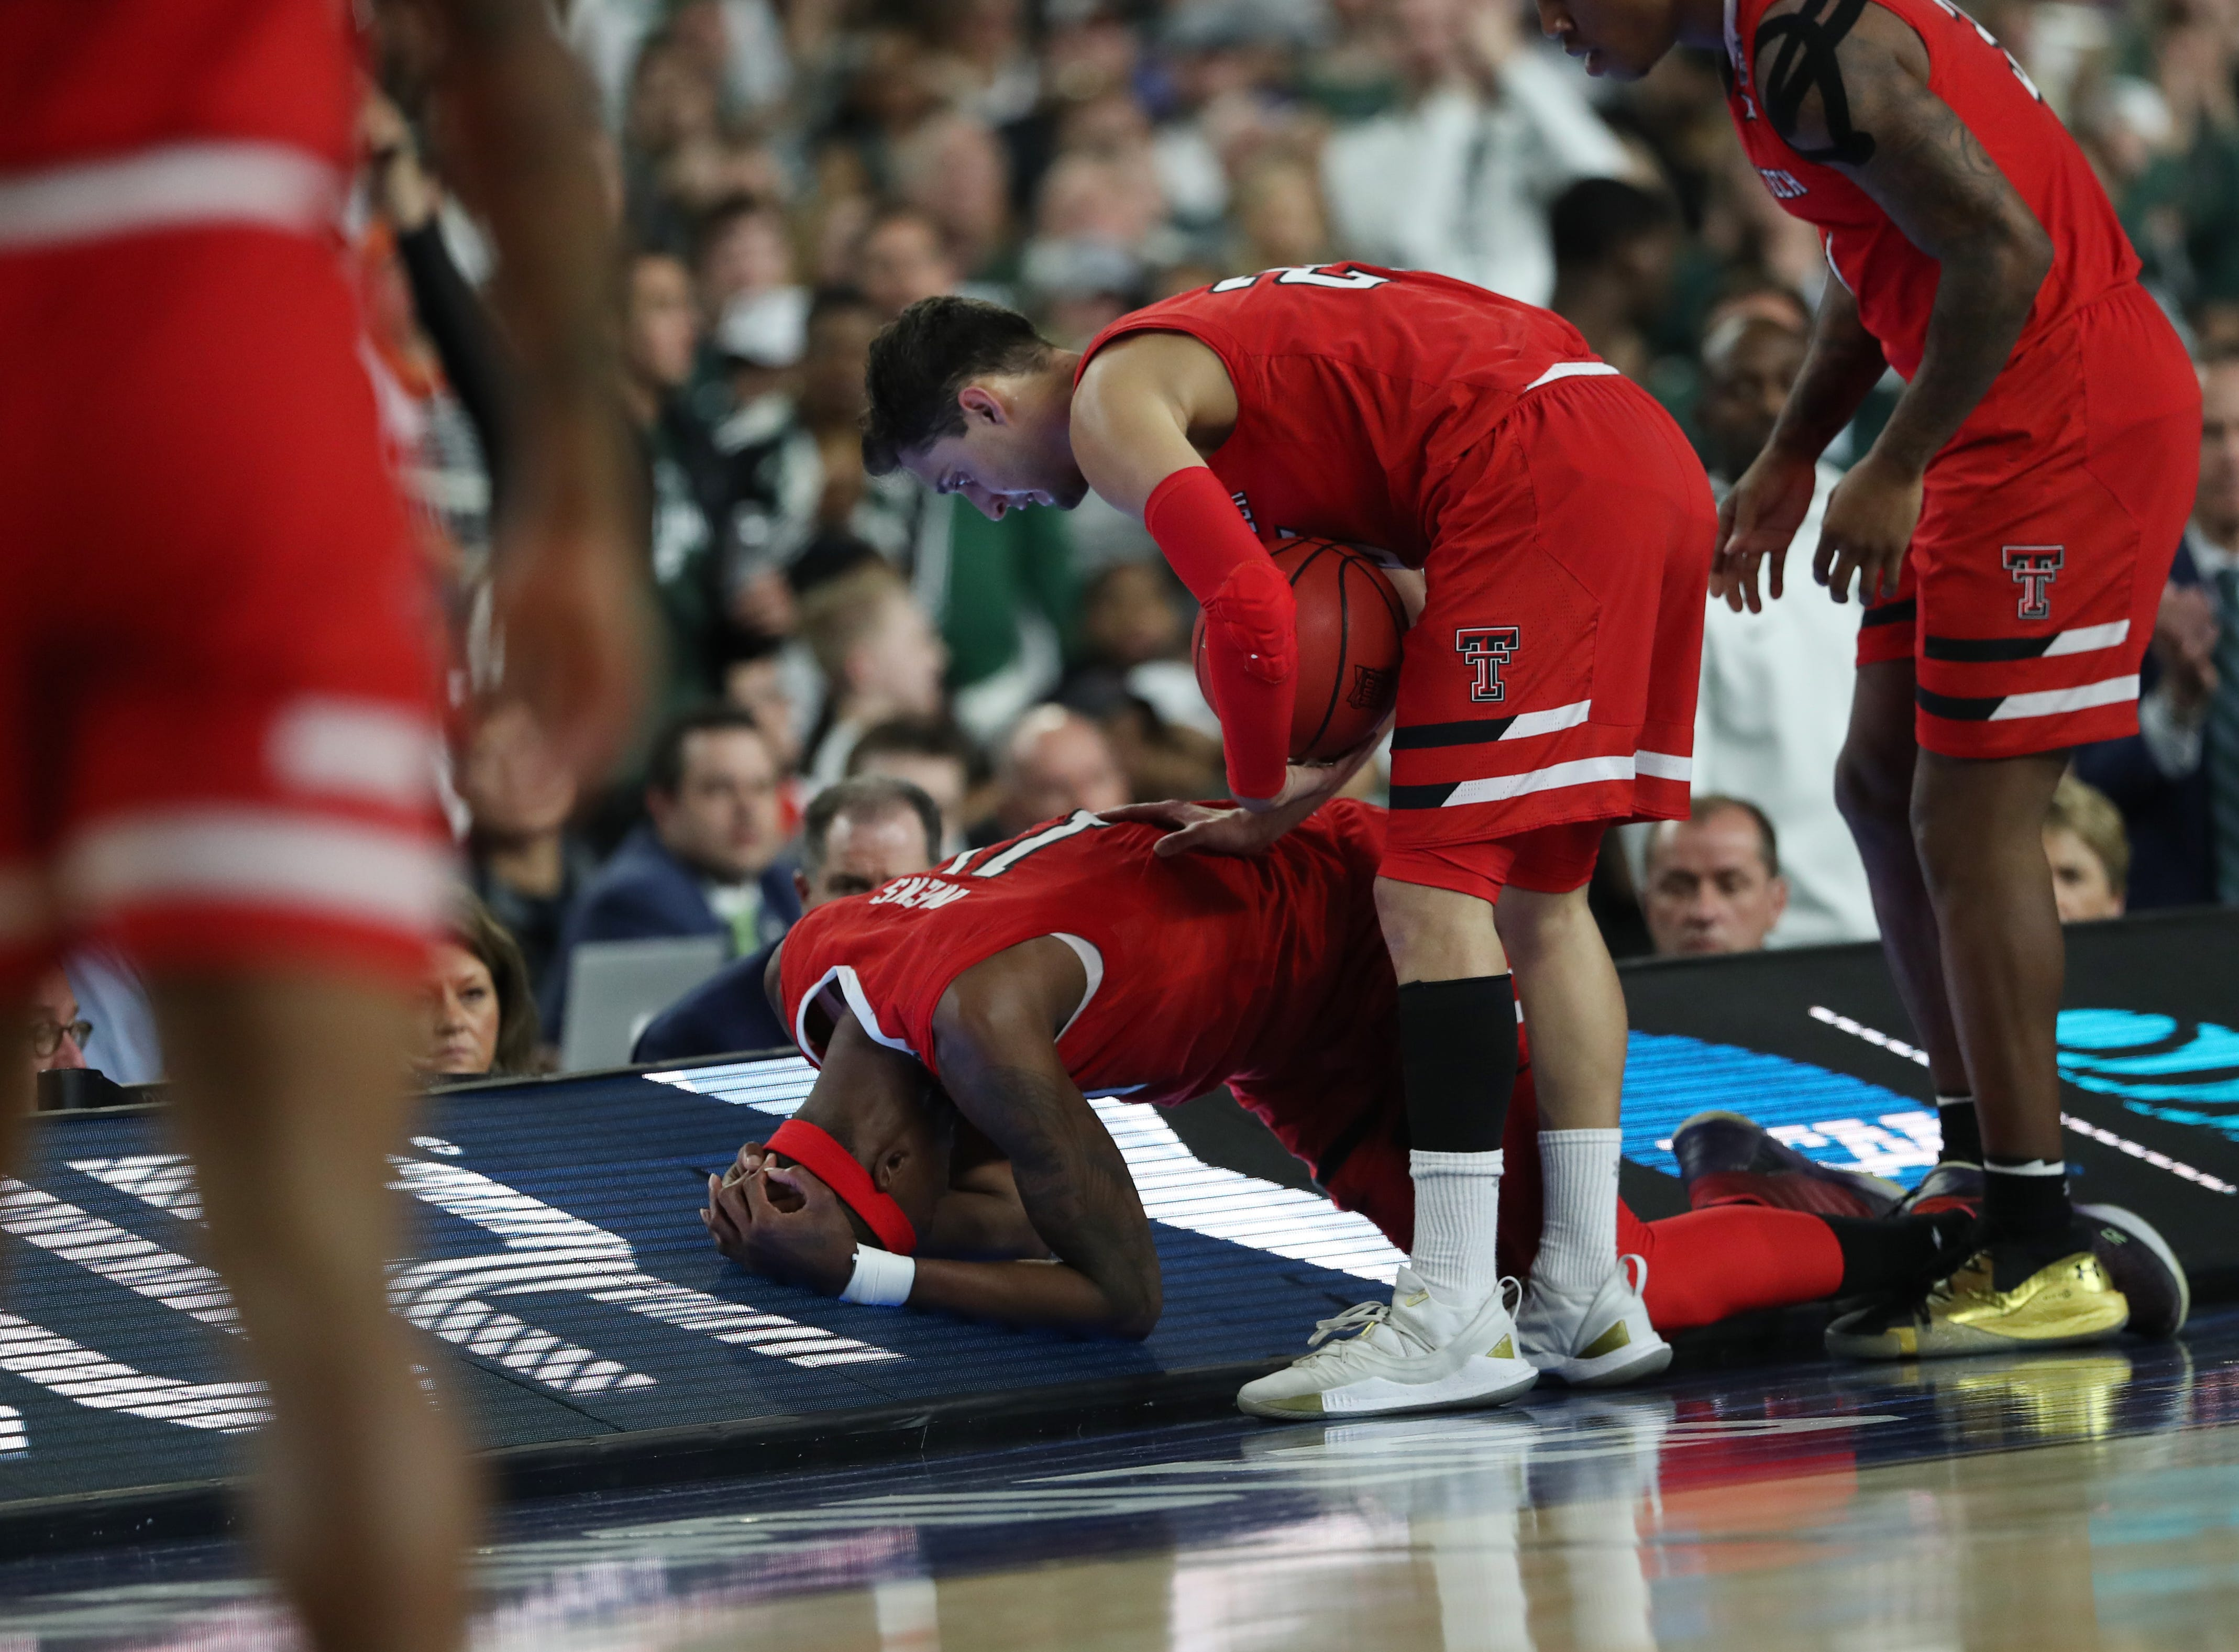 Texas Tech forward Tariq Owens (11) holds his head after an injury during the first half of the Final Four game against Michigan State at U.S. Bank Stadium in Minneapolis, Minnesota on Saturday, April 06, 2019.